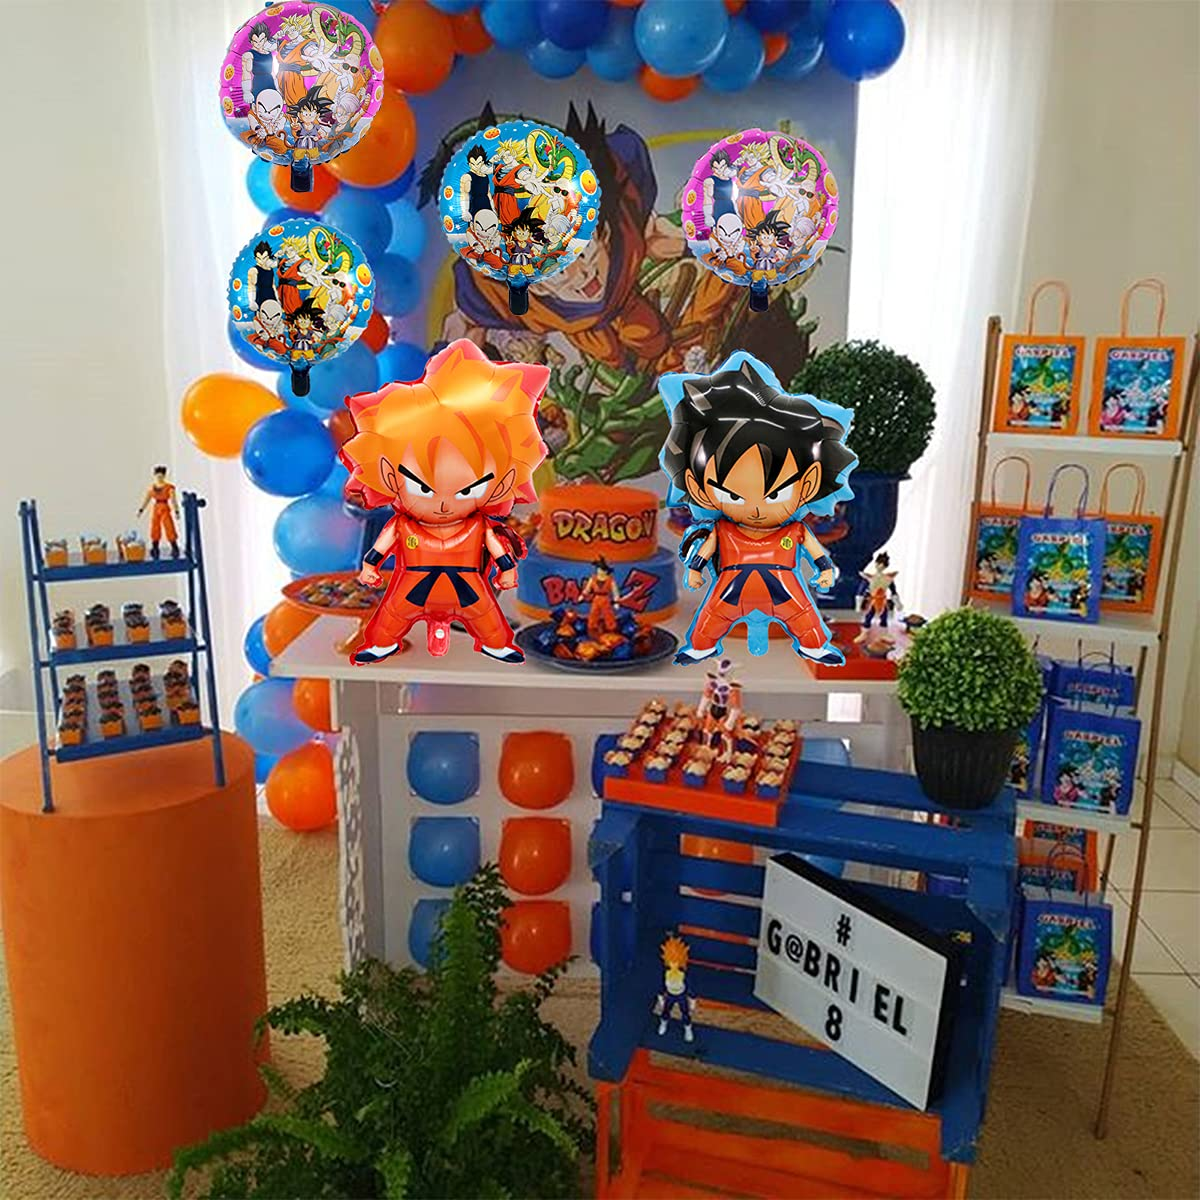 12 Pcs For Dragon Ball Goodie Bags Birthday Party Supplies For Kids,Double Side DBZ Super Saiyan Goku Gohan Character Party Decorations